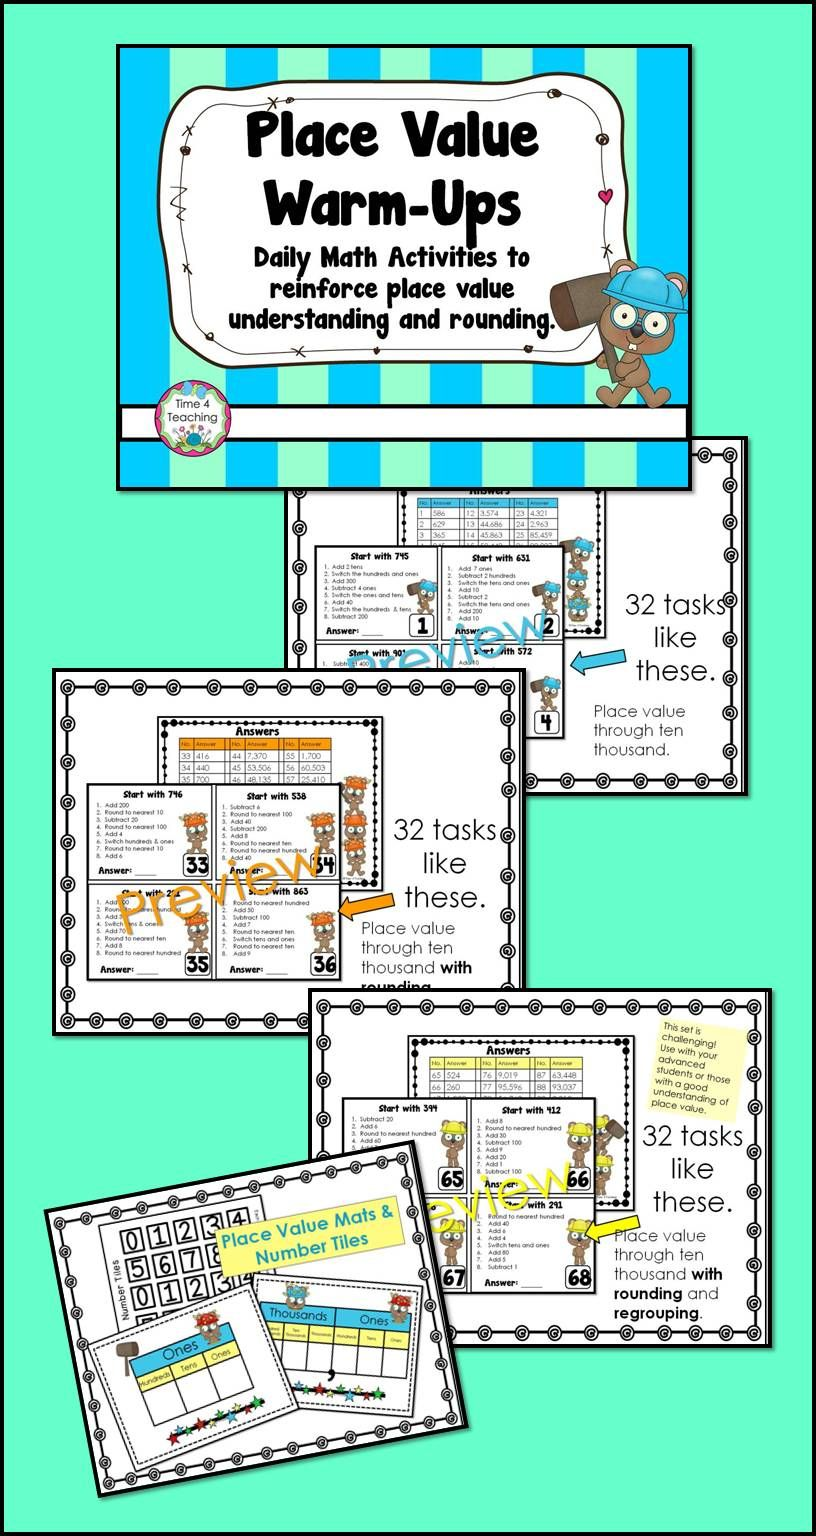 Place Value Warm-Ups: Daily Math Activities | Upper Grade Goodies ...